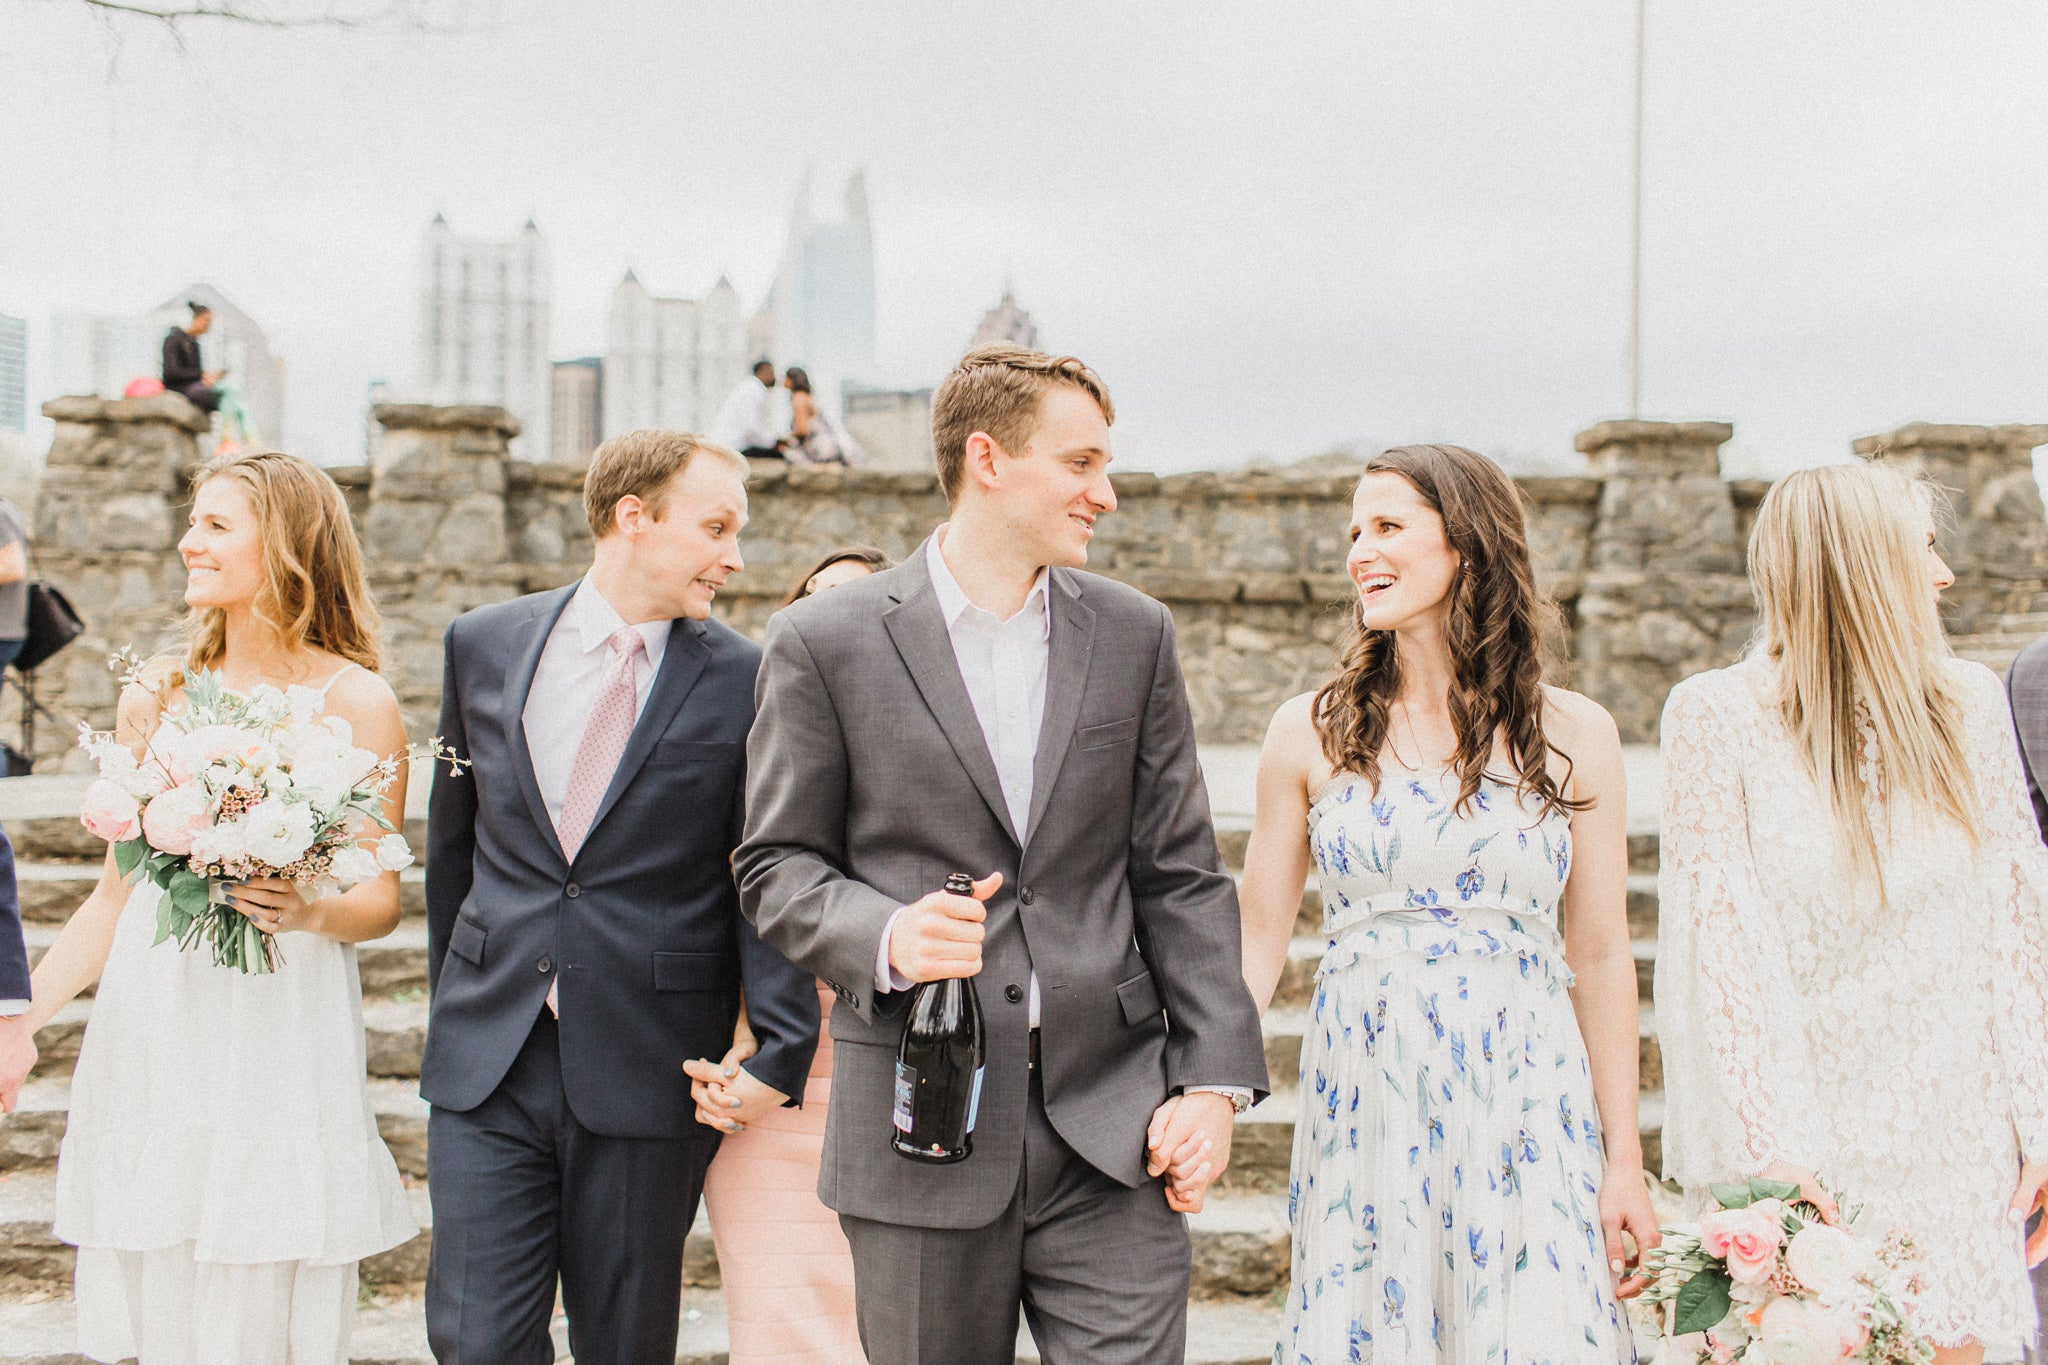 smiling groom with his bride to be and wedding party holding a bottle of Le Marca Champagne